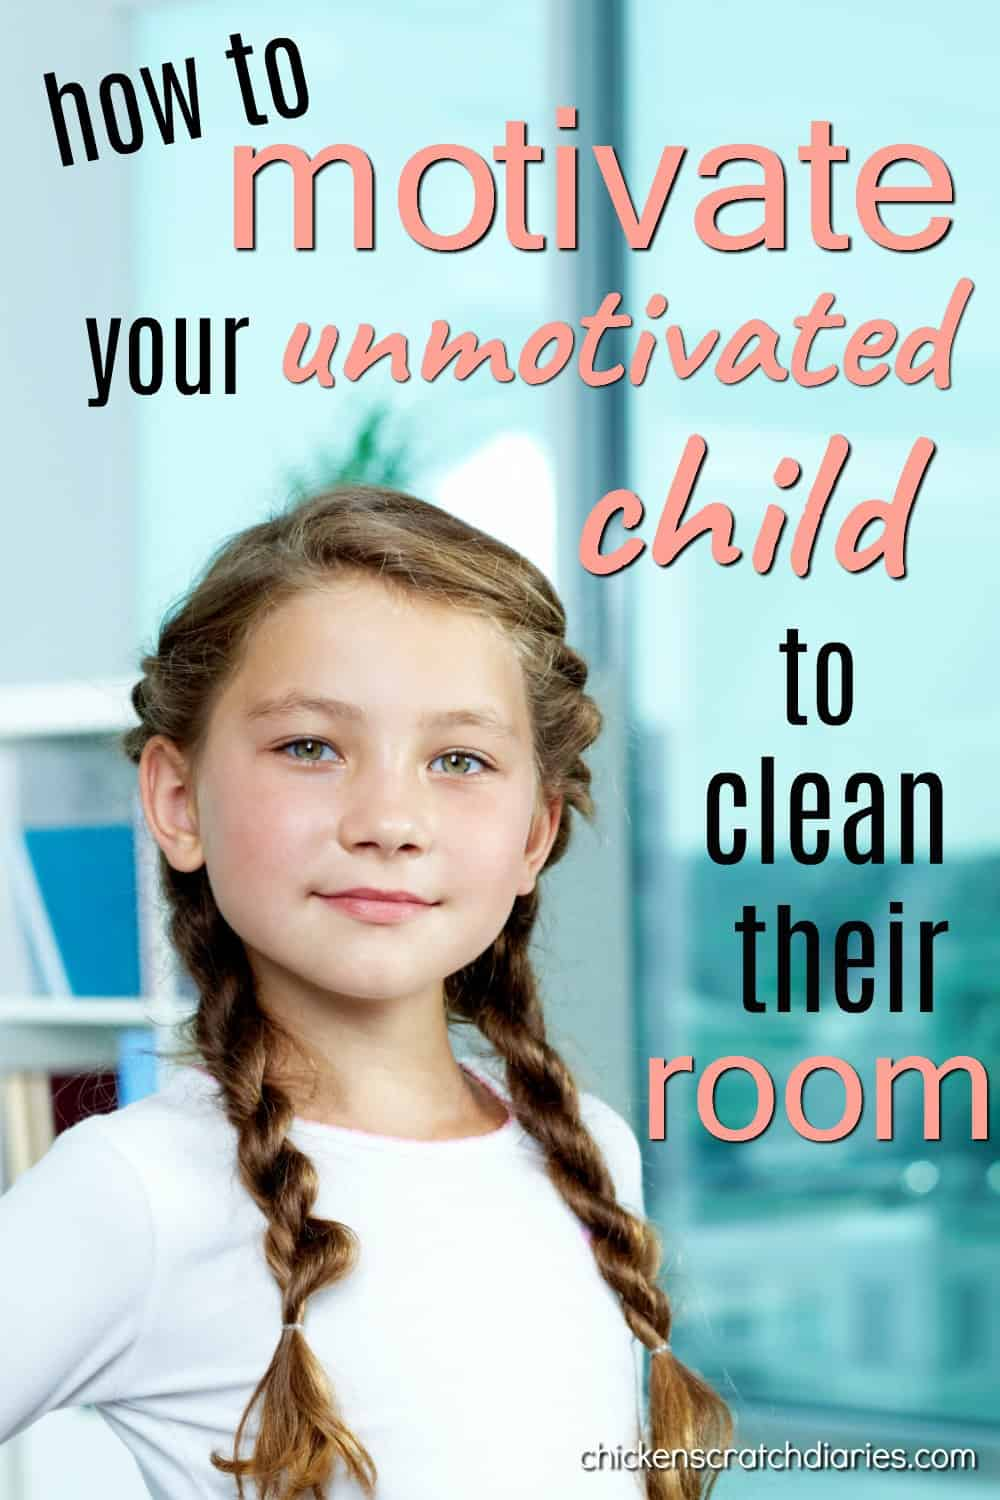 Clean bedroom motivation - what does it take to change your child's perspective on a messy bedroom? #Parenting #Organization #Cleaning #MiddleChild